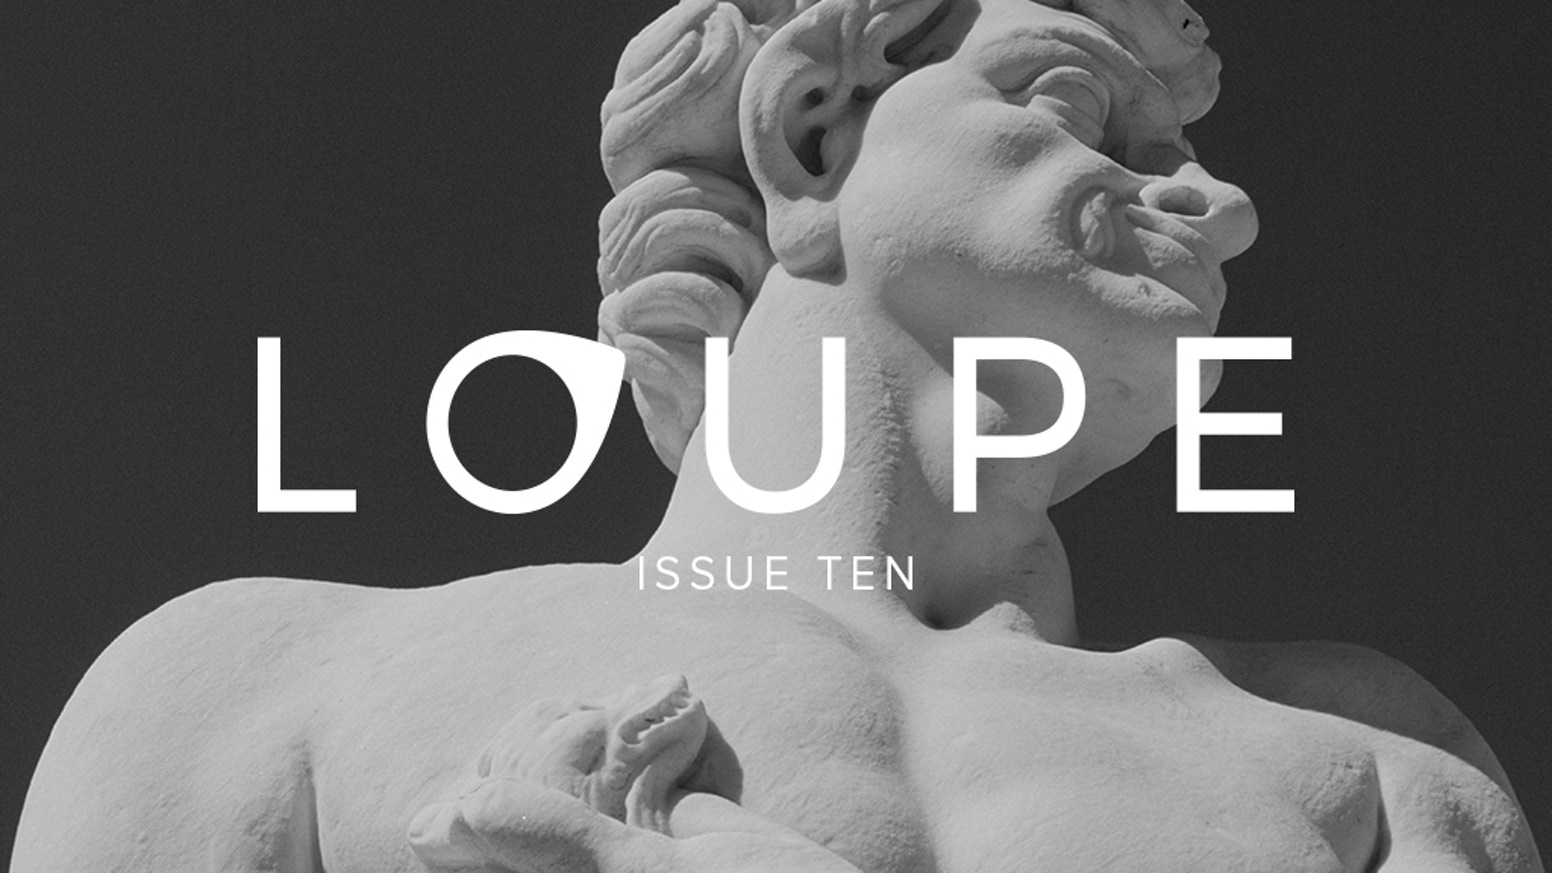 Supporting the creation of Issue 10 of Loupe magazine, a photography magazine dedicated to contemporary talent.